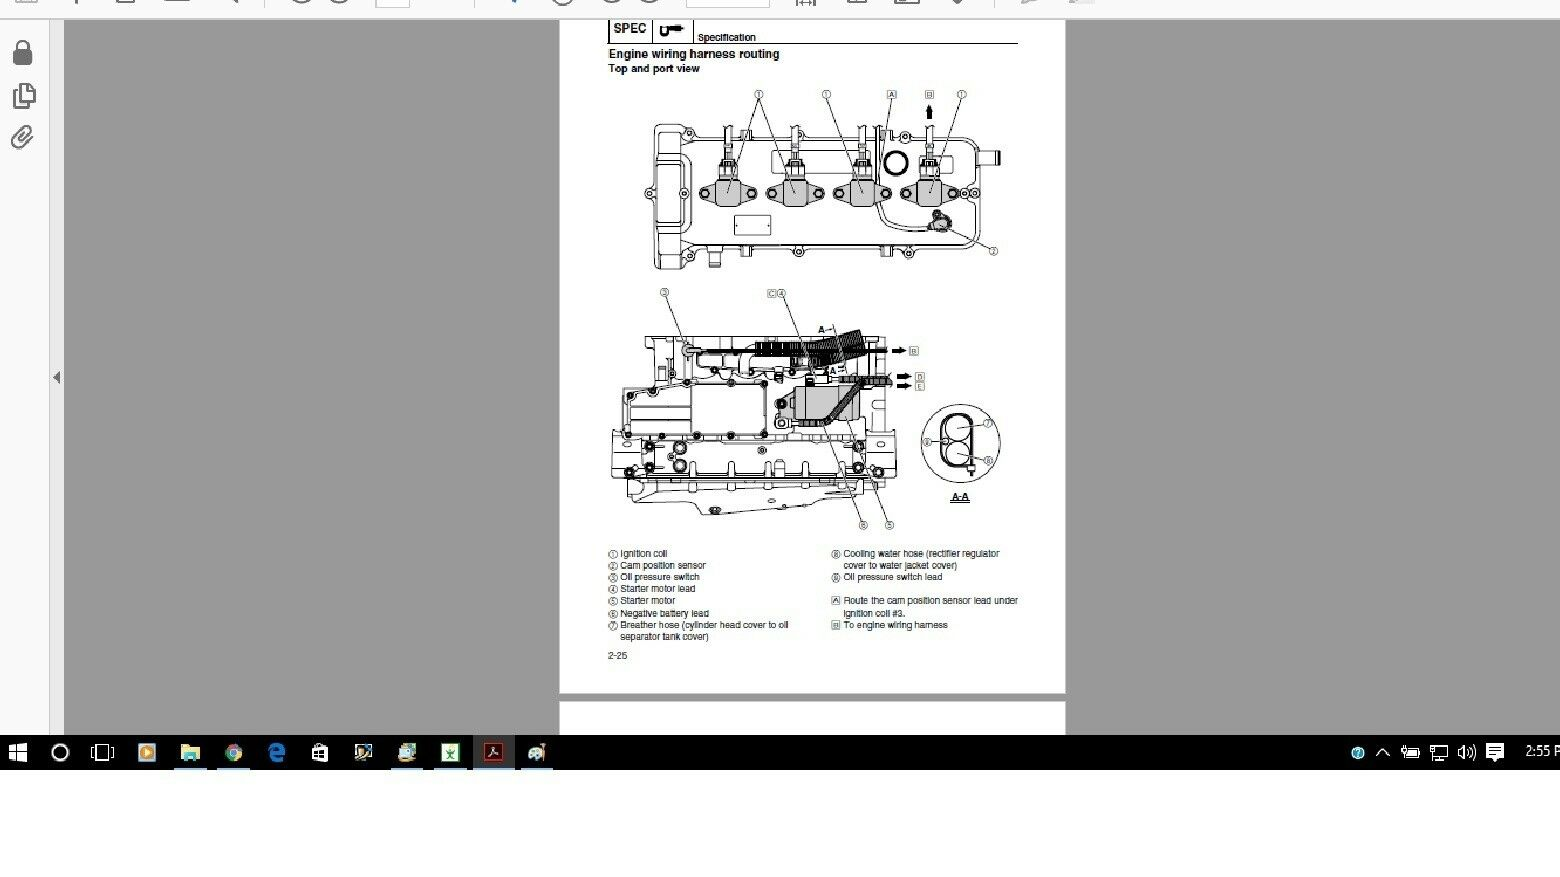 Yamaha Jet Boat Service Manual Ar Sx 190 2012 2014 Engine Wiring Harness Norton Secured Powered By Verisign